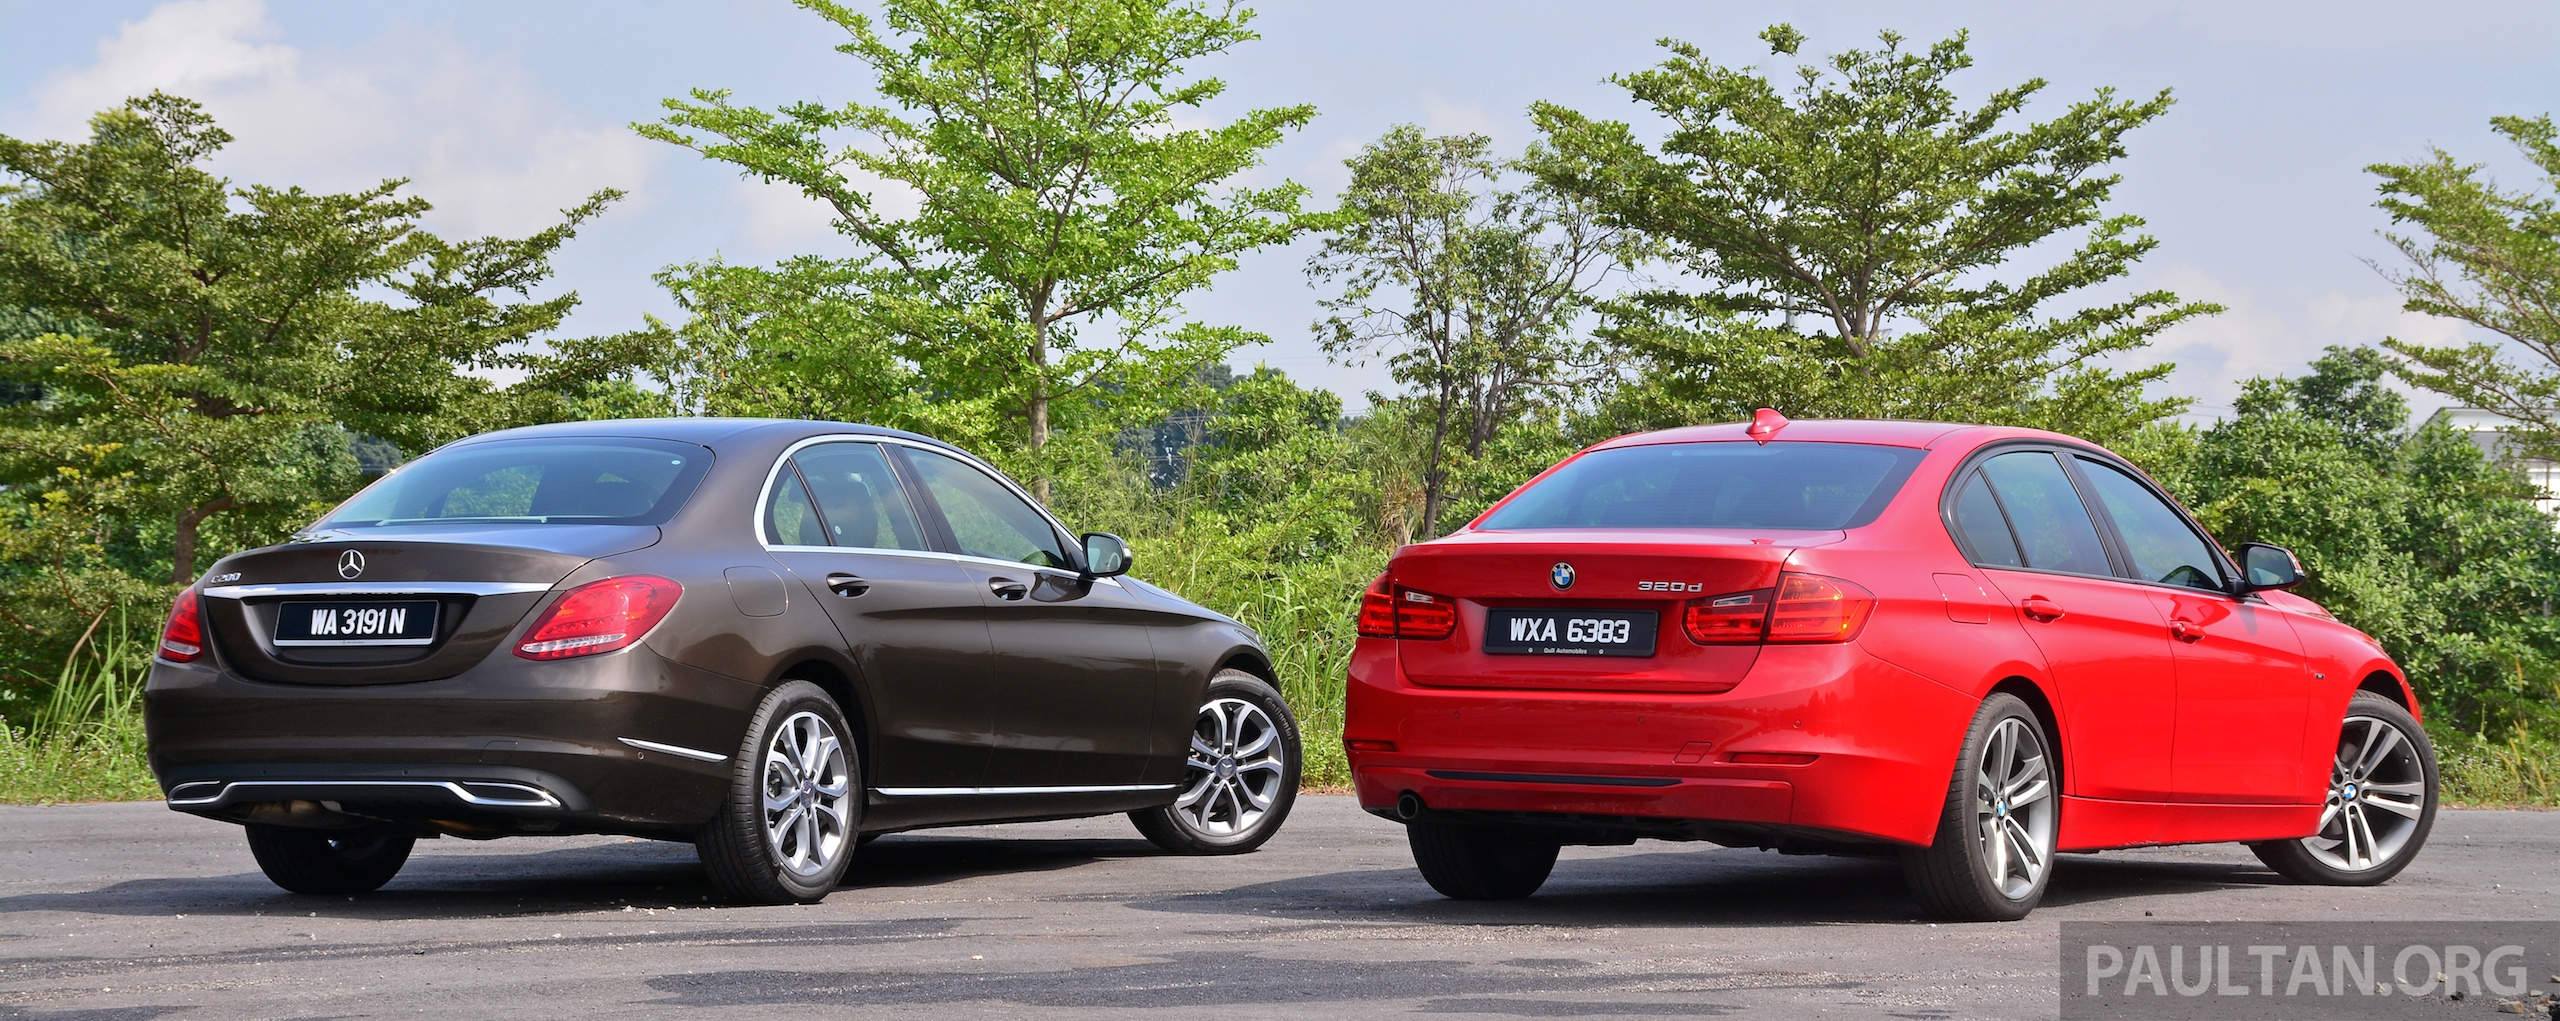 Gallery w205 merc c class vs f30 bmw 3 series image 286252 for Mercedes benz 3 series